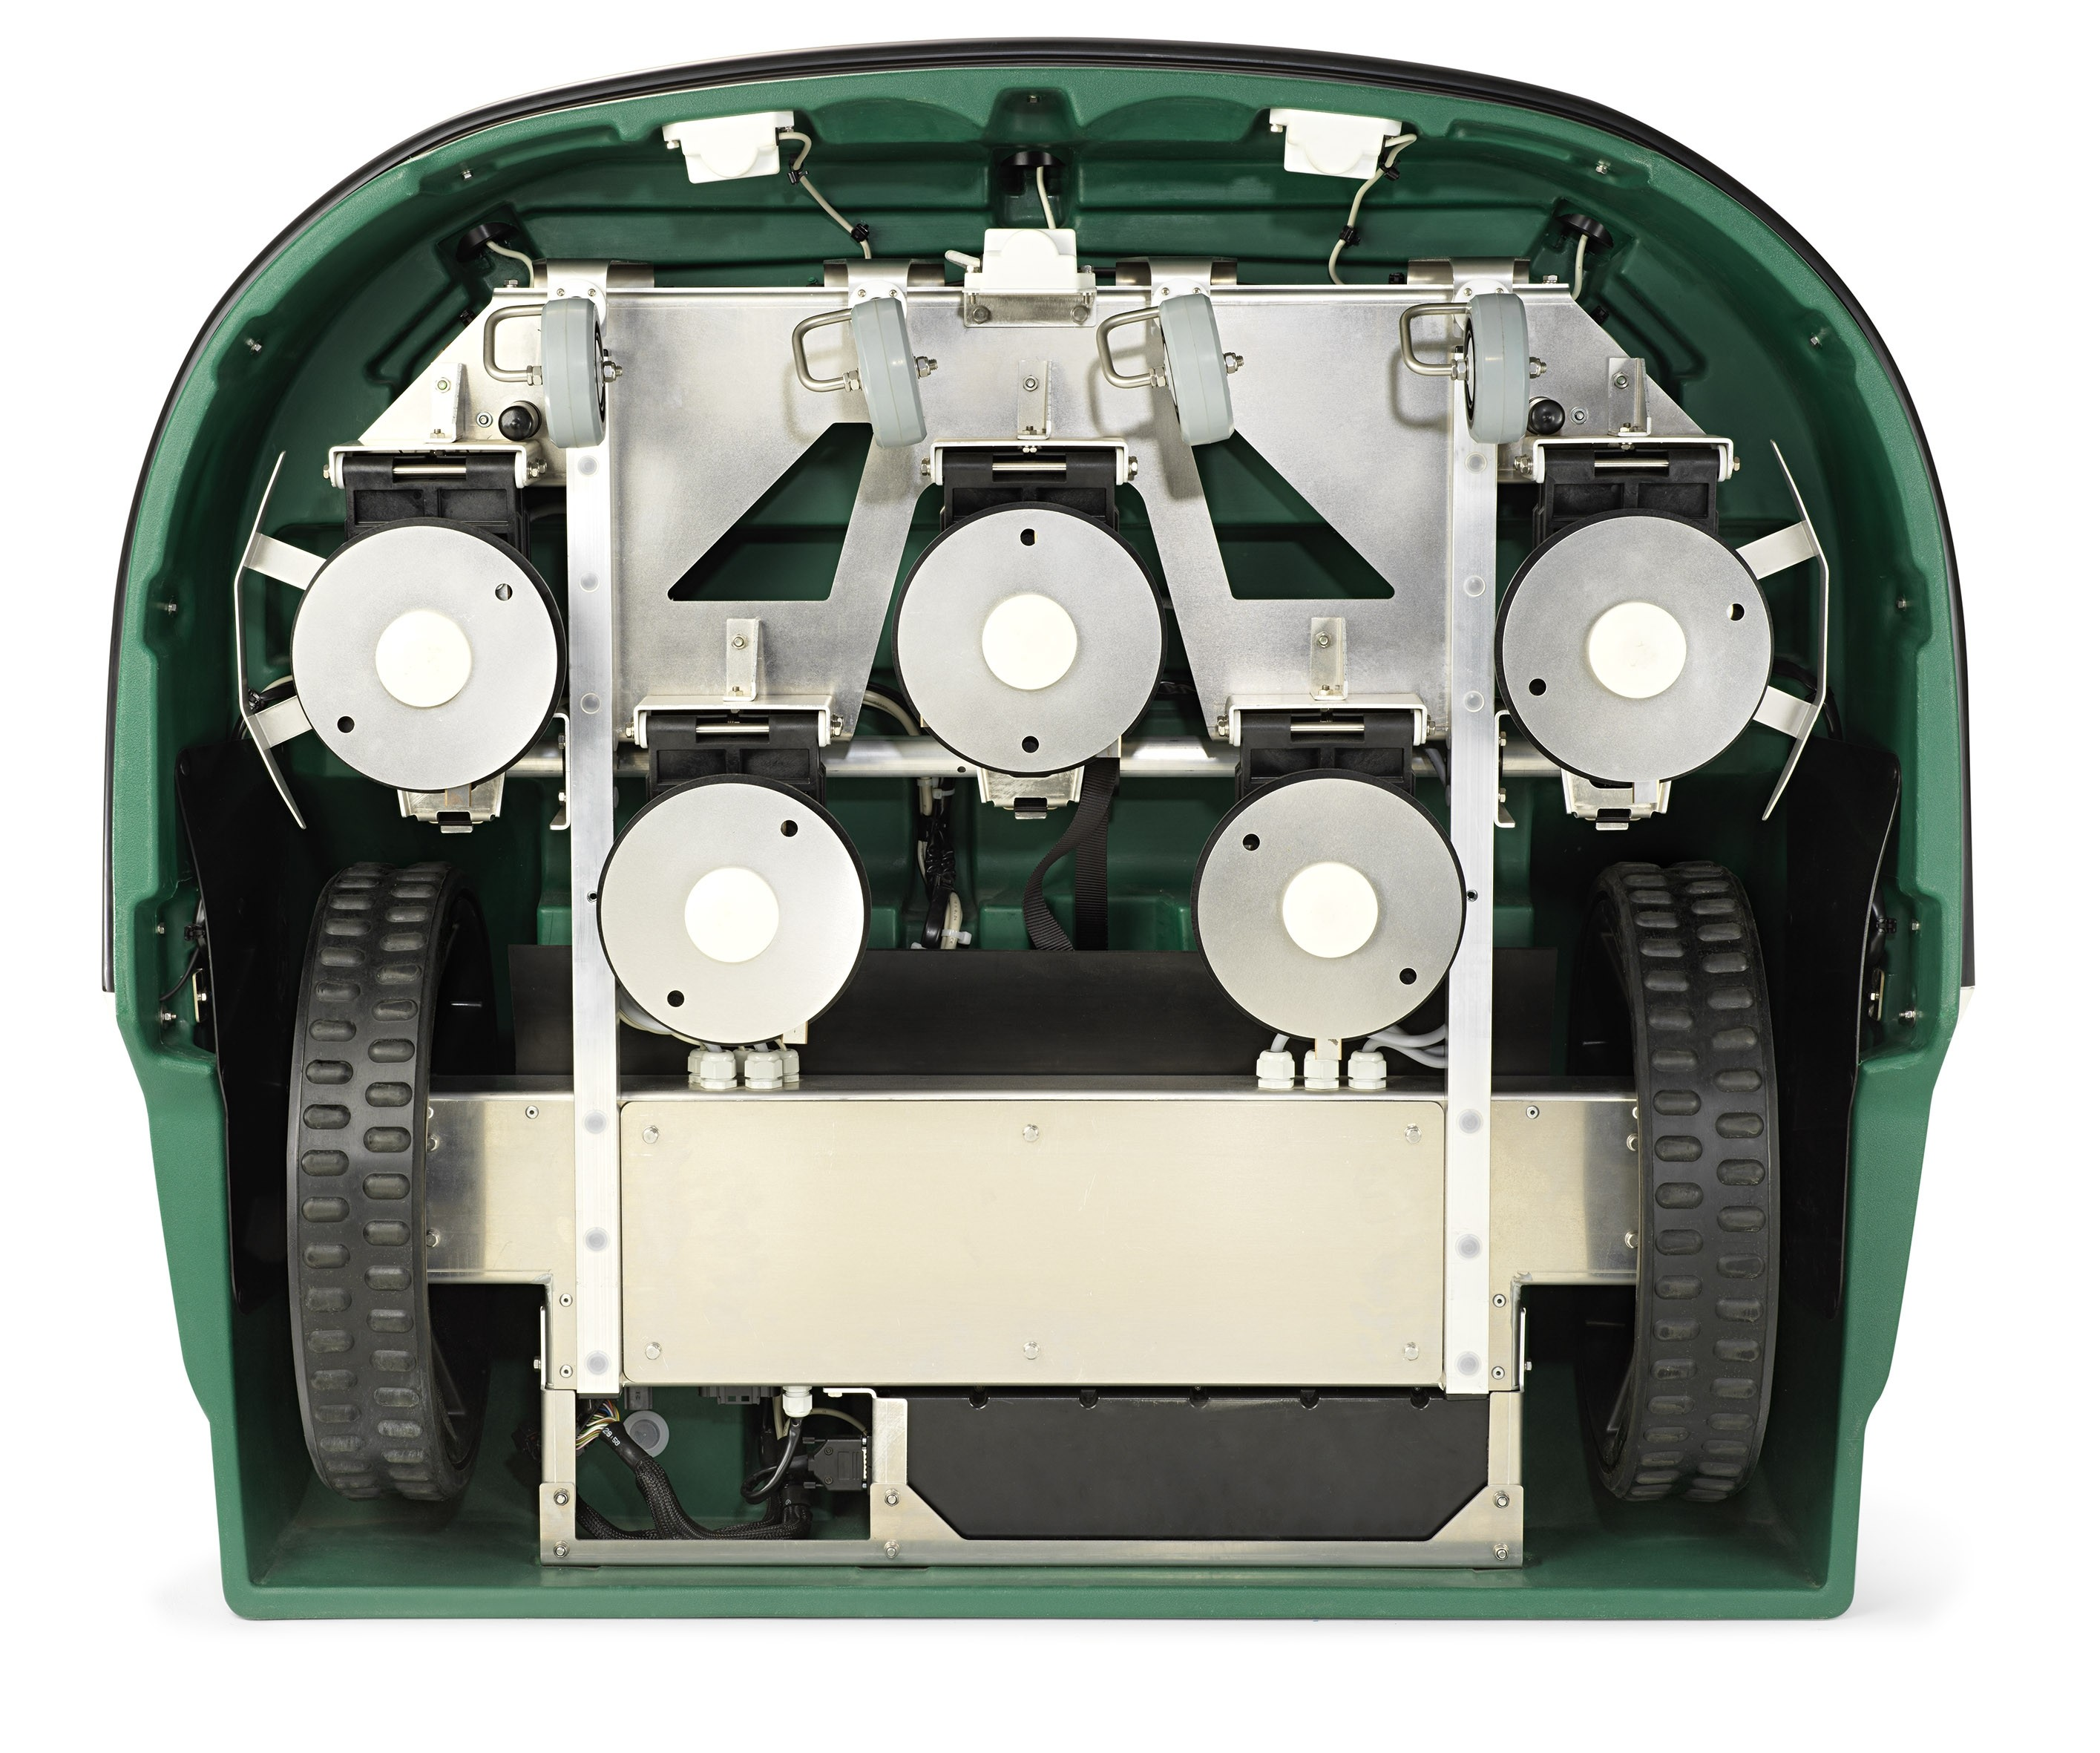 Bel Robotics Big Mow Connected UK Robot Lawn Mower